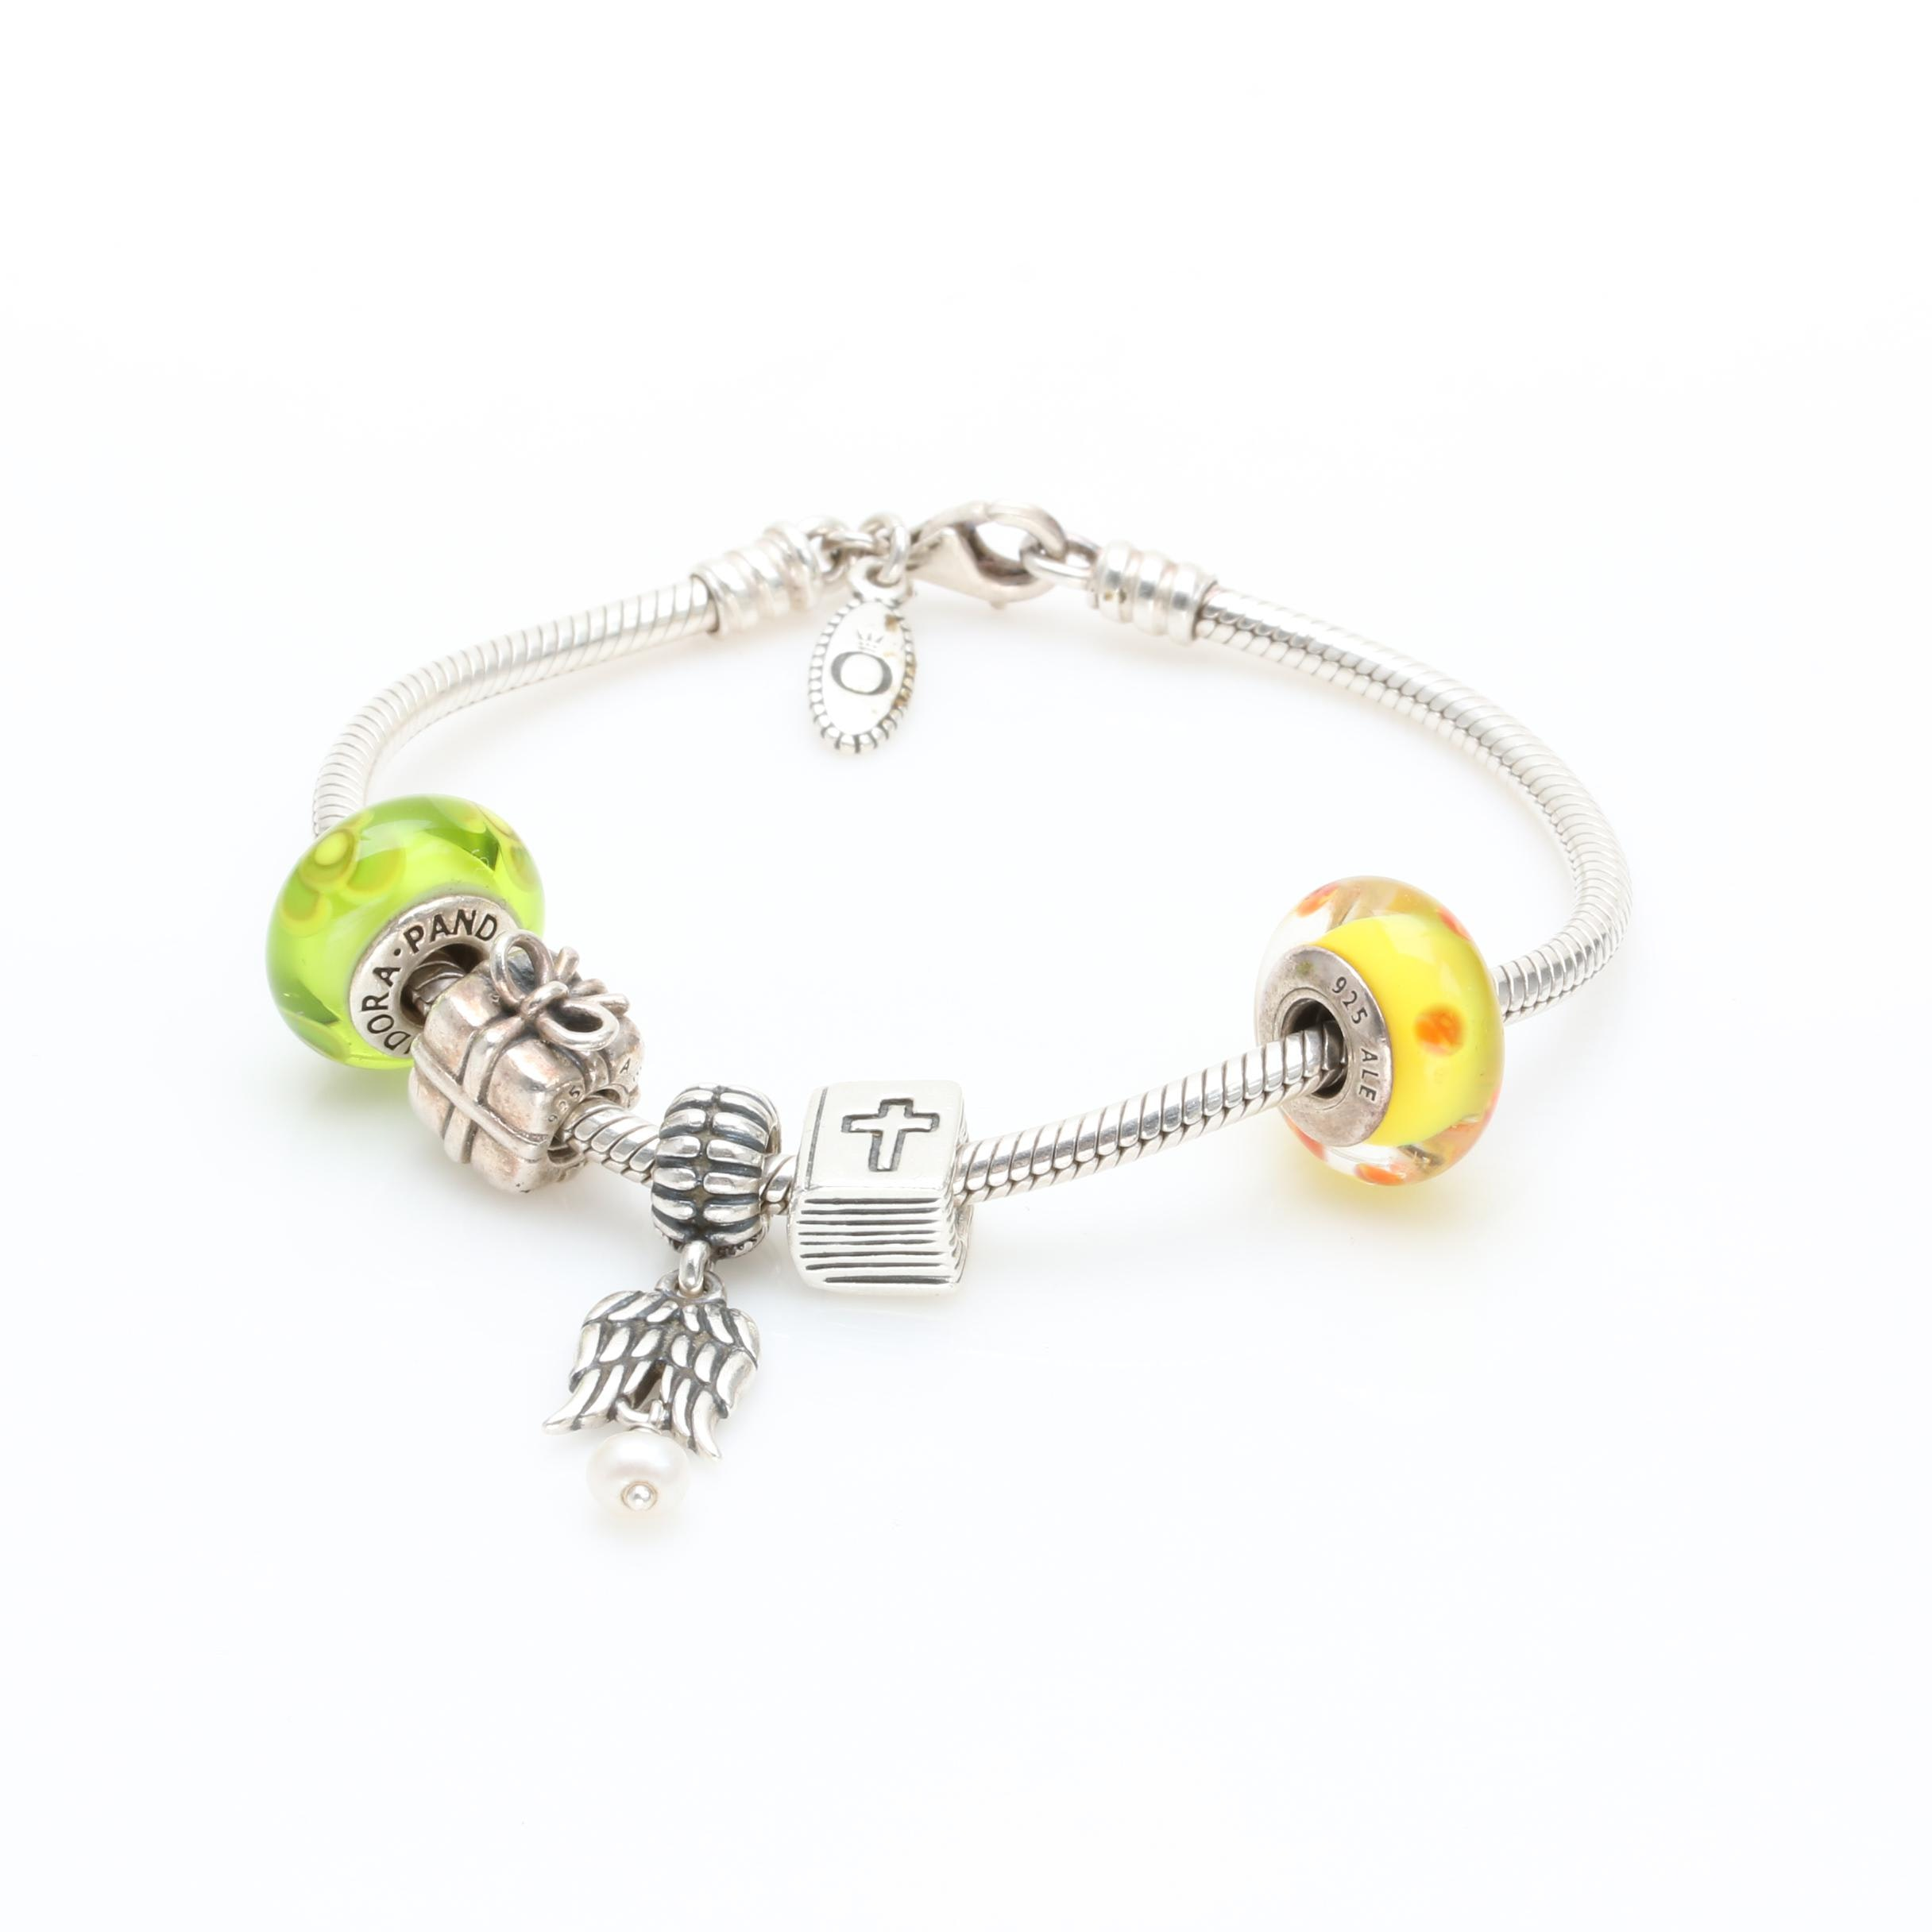 Pandora Sterling Silver Lampwork Glass and Cultured Pearl Charm Bracelet